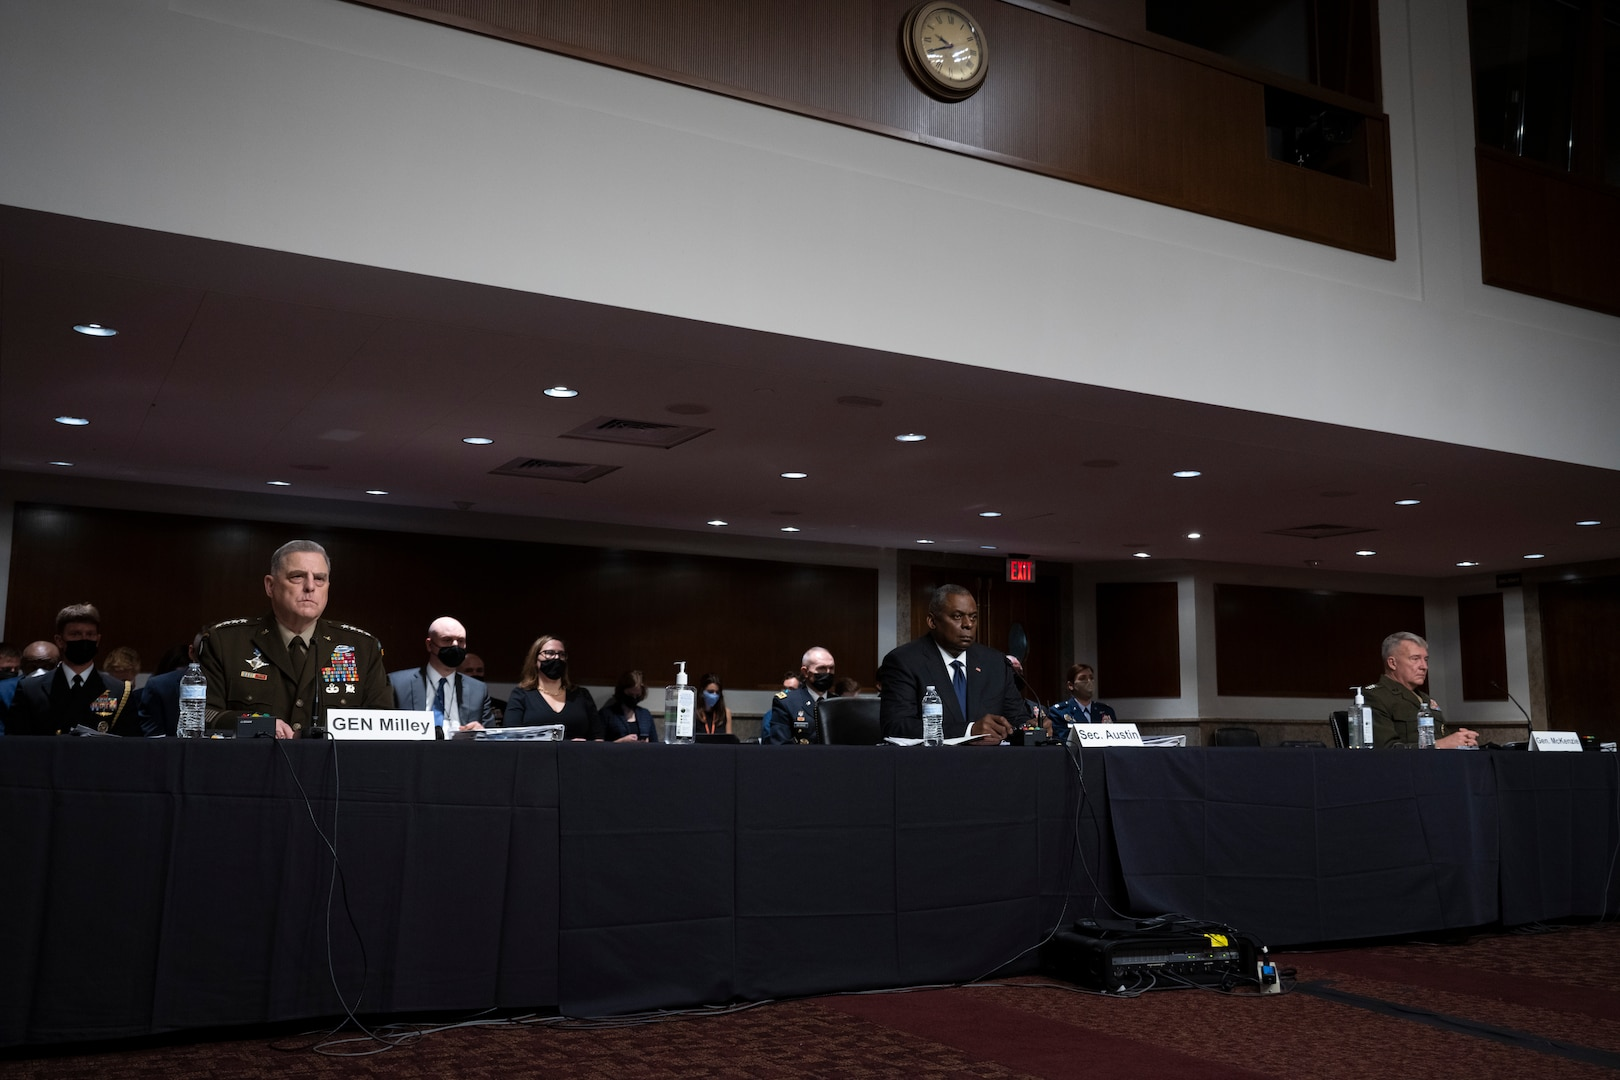 Secretary of Defense Lloyd J. Austin III, Gen. Mark Milley, chairman of the Joint Chiefs of Staff and Gen. Kenneth McKenzie, commander, United States Central Command appear before the Senate Armed Services Committee on the conclusion of military operations in Afghanistan and plans for future counterterrorism operations. (DoD photo by Chad J. McNeeley)